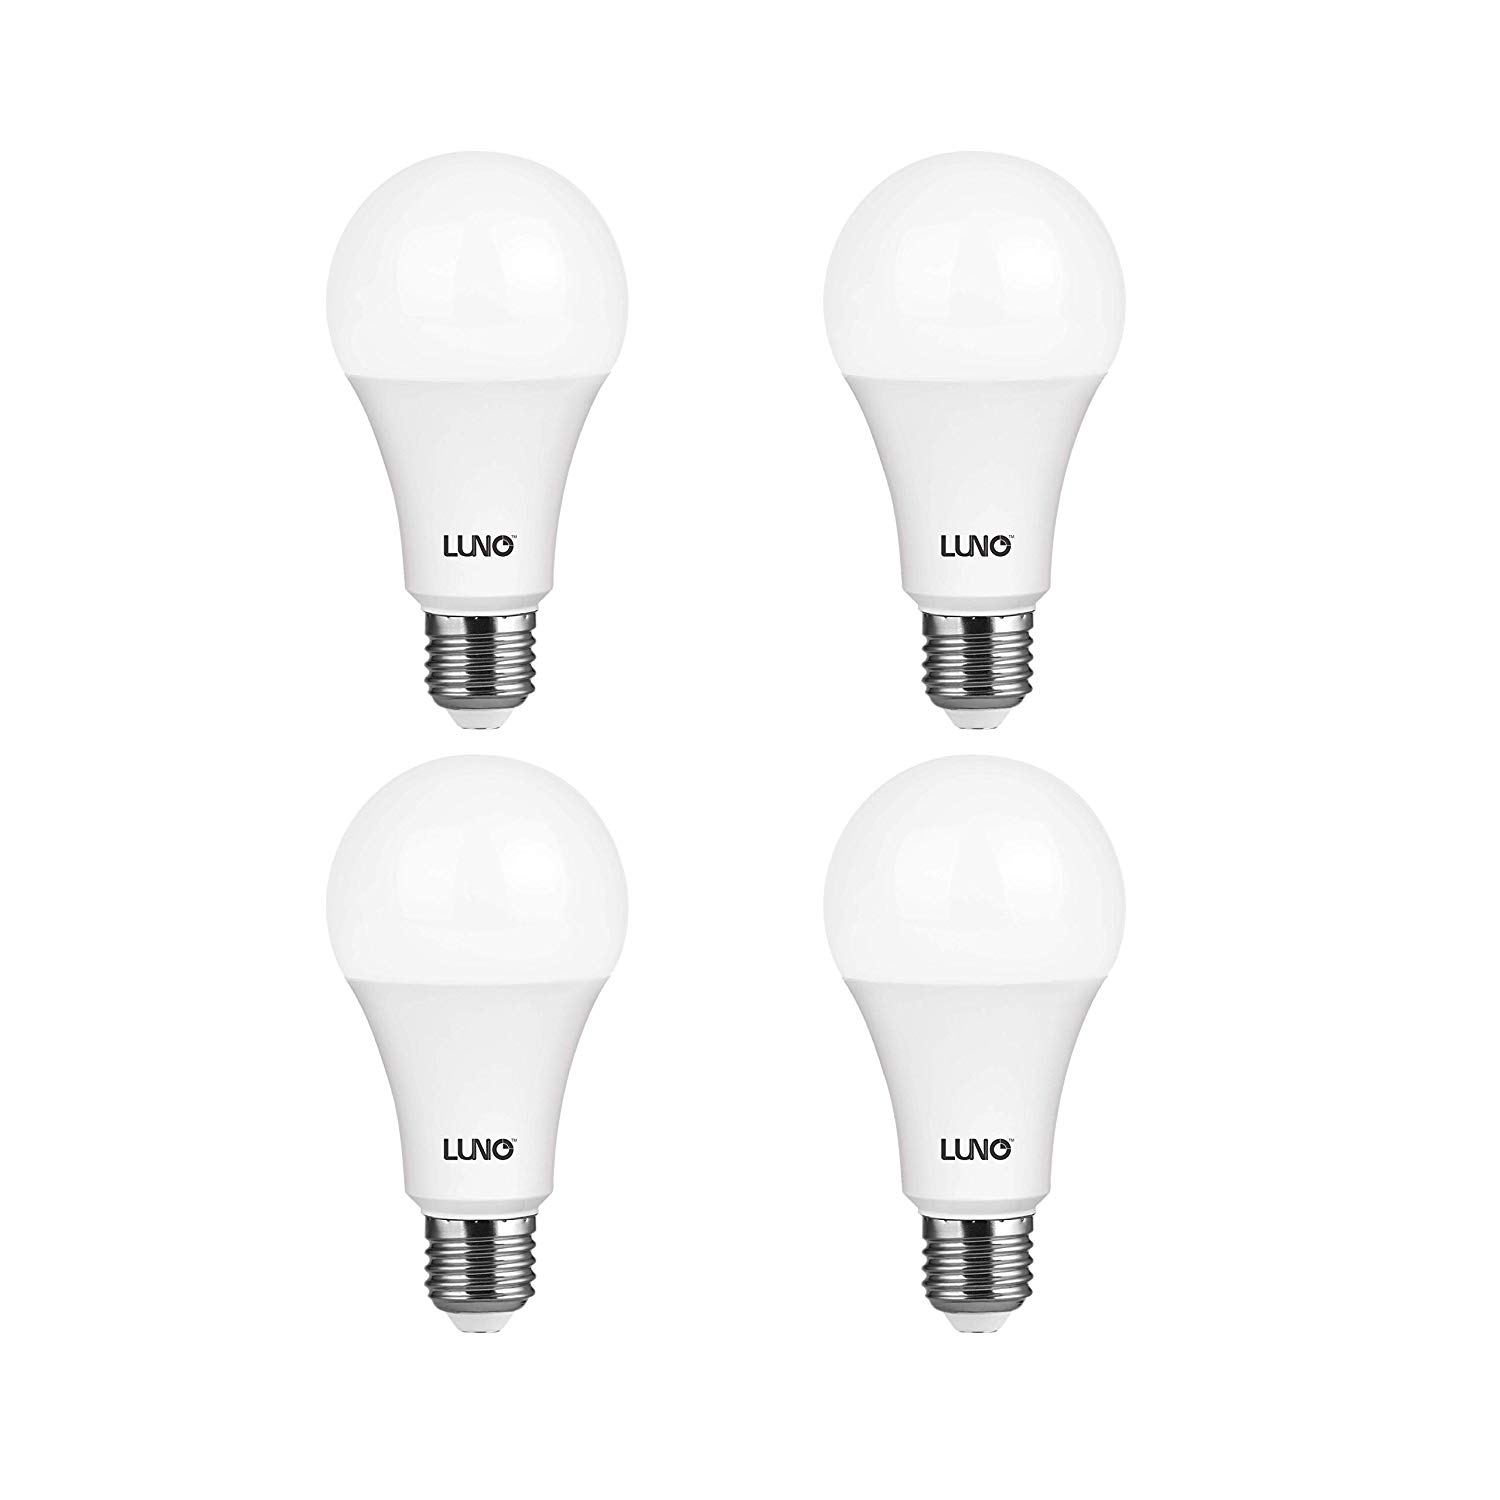 LUNO A21 Dimmable LED Bulb, 15W (100W Equivalent), 1600 Lumens, 5000K (Daylight), Medium Base (E26), UL Certified (4-Pack)